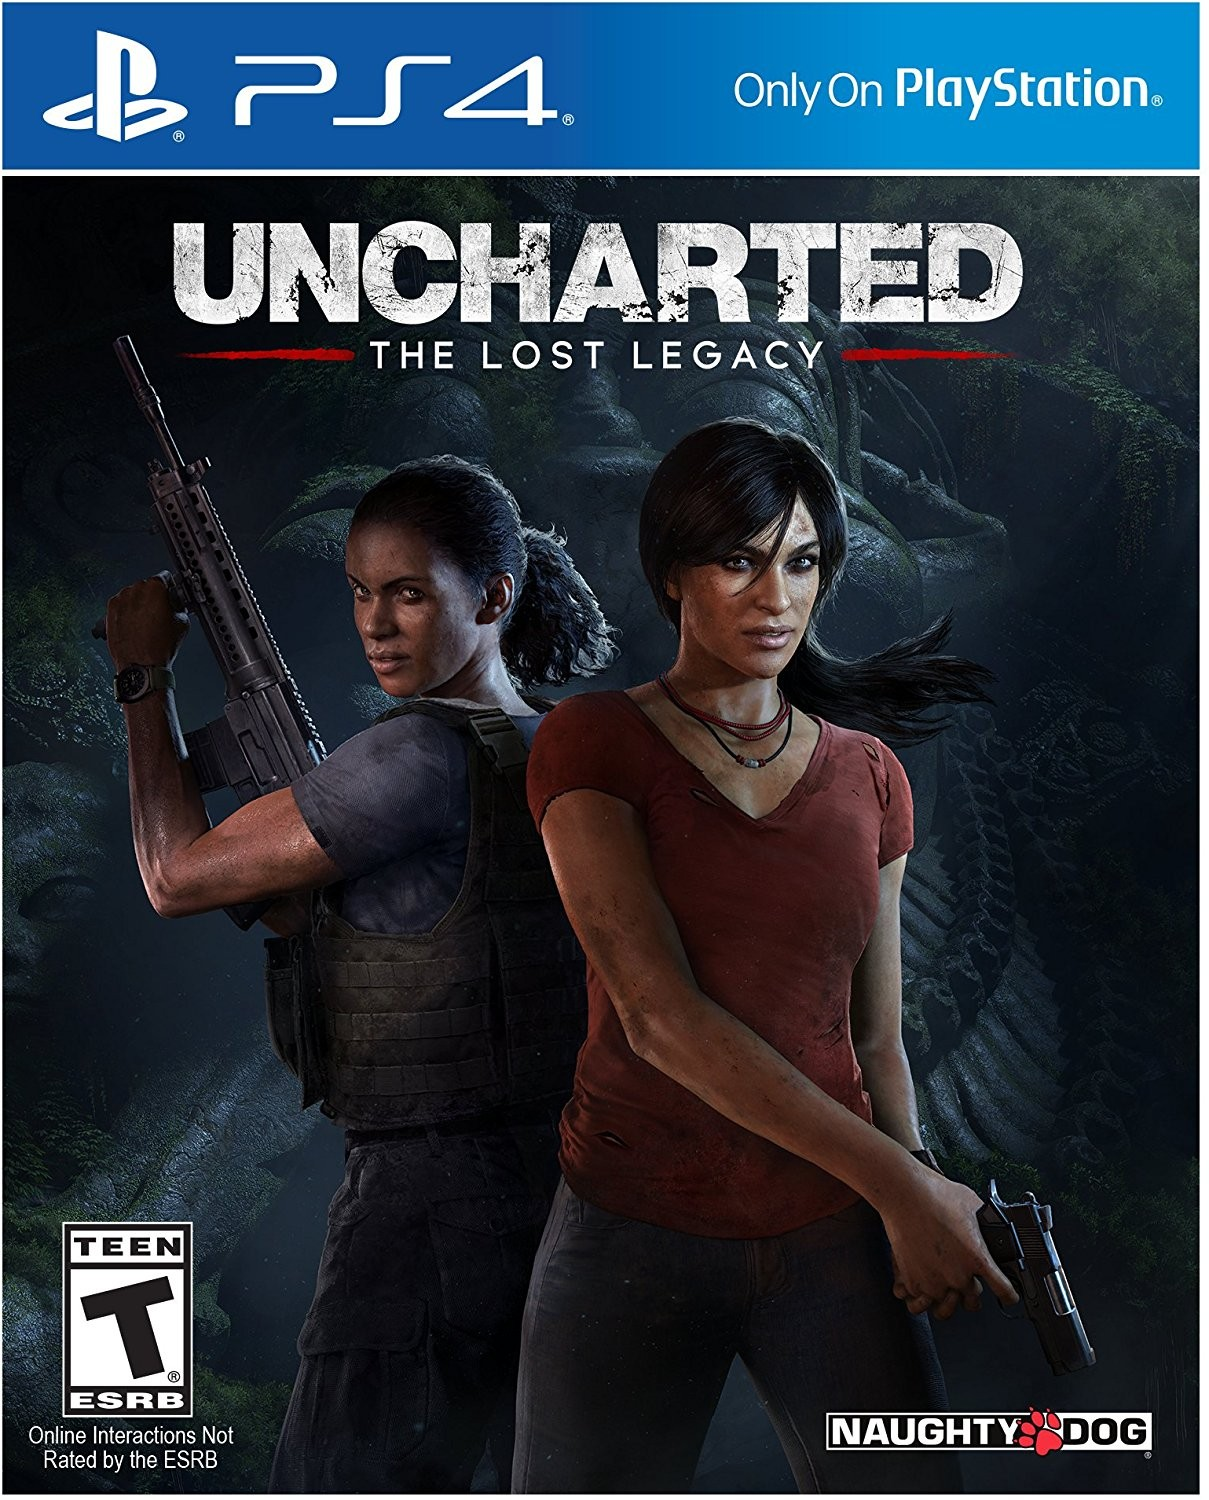 Uncharted: The Lost Legacy 神秘海域 失落的遗产